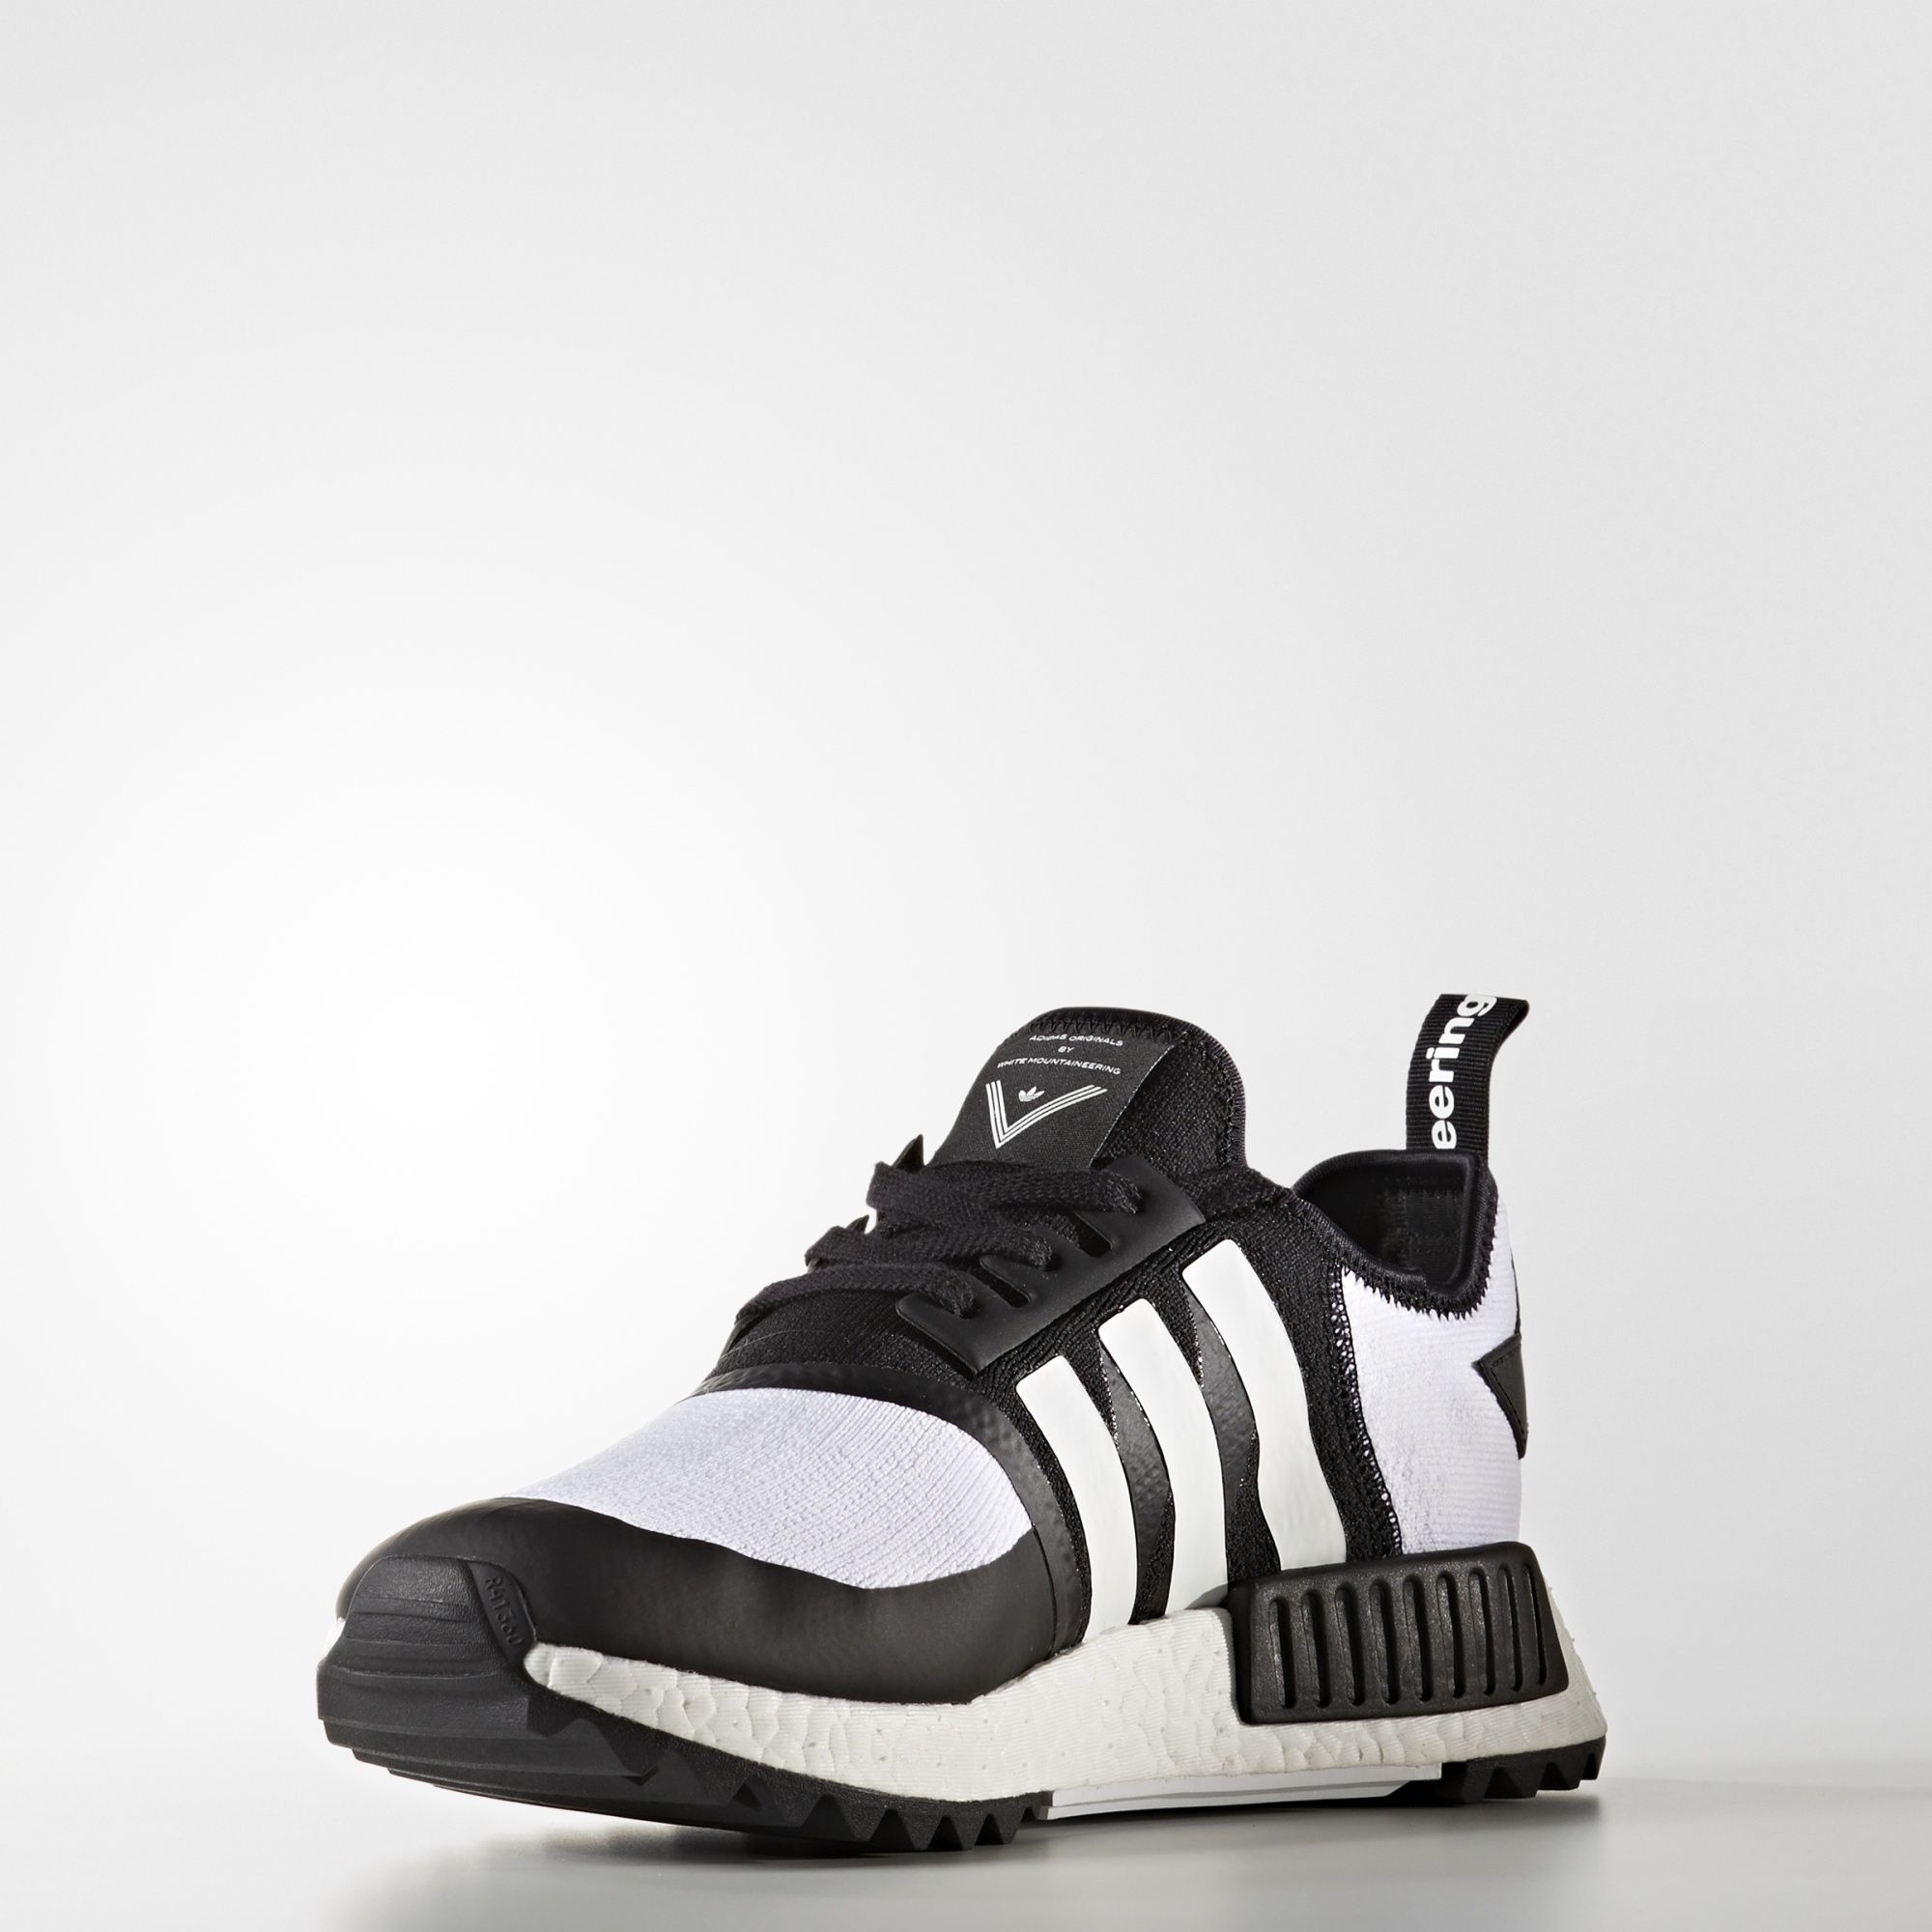 CG3646 White Mountaineering x adidas NMD R1 Trail Primeknit Black 2